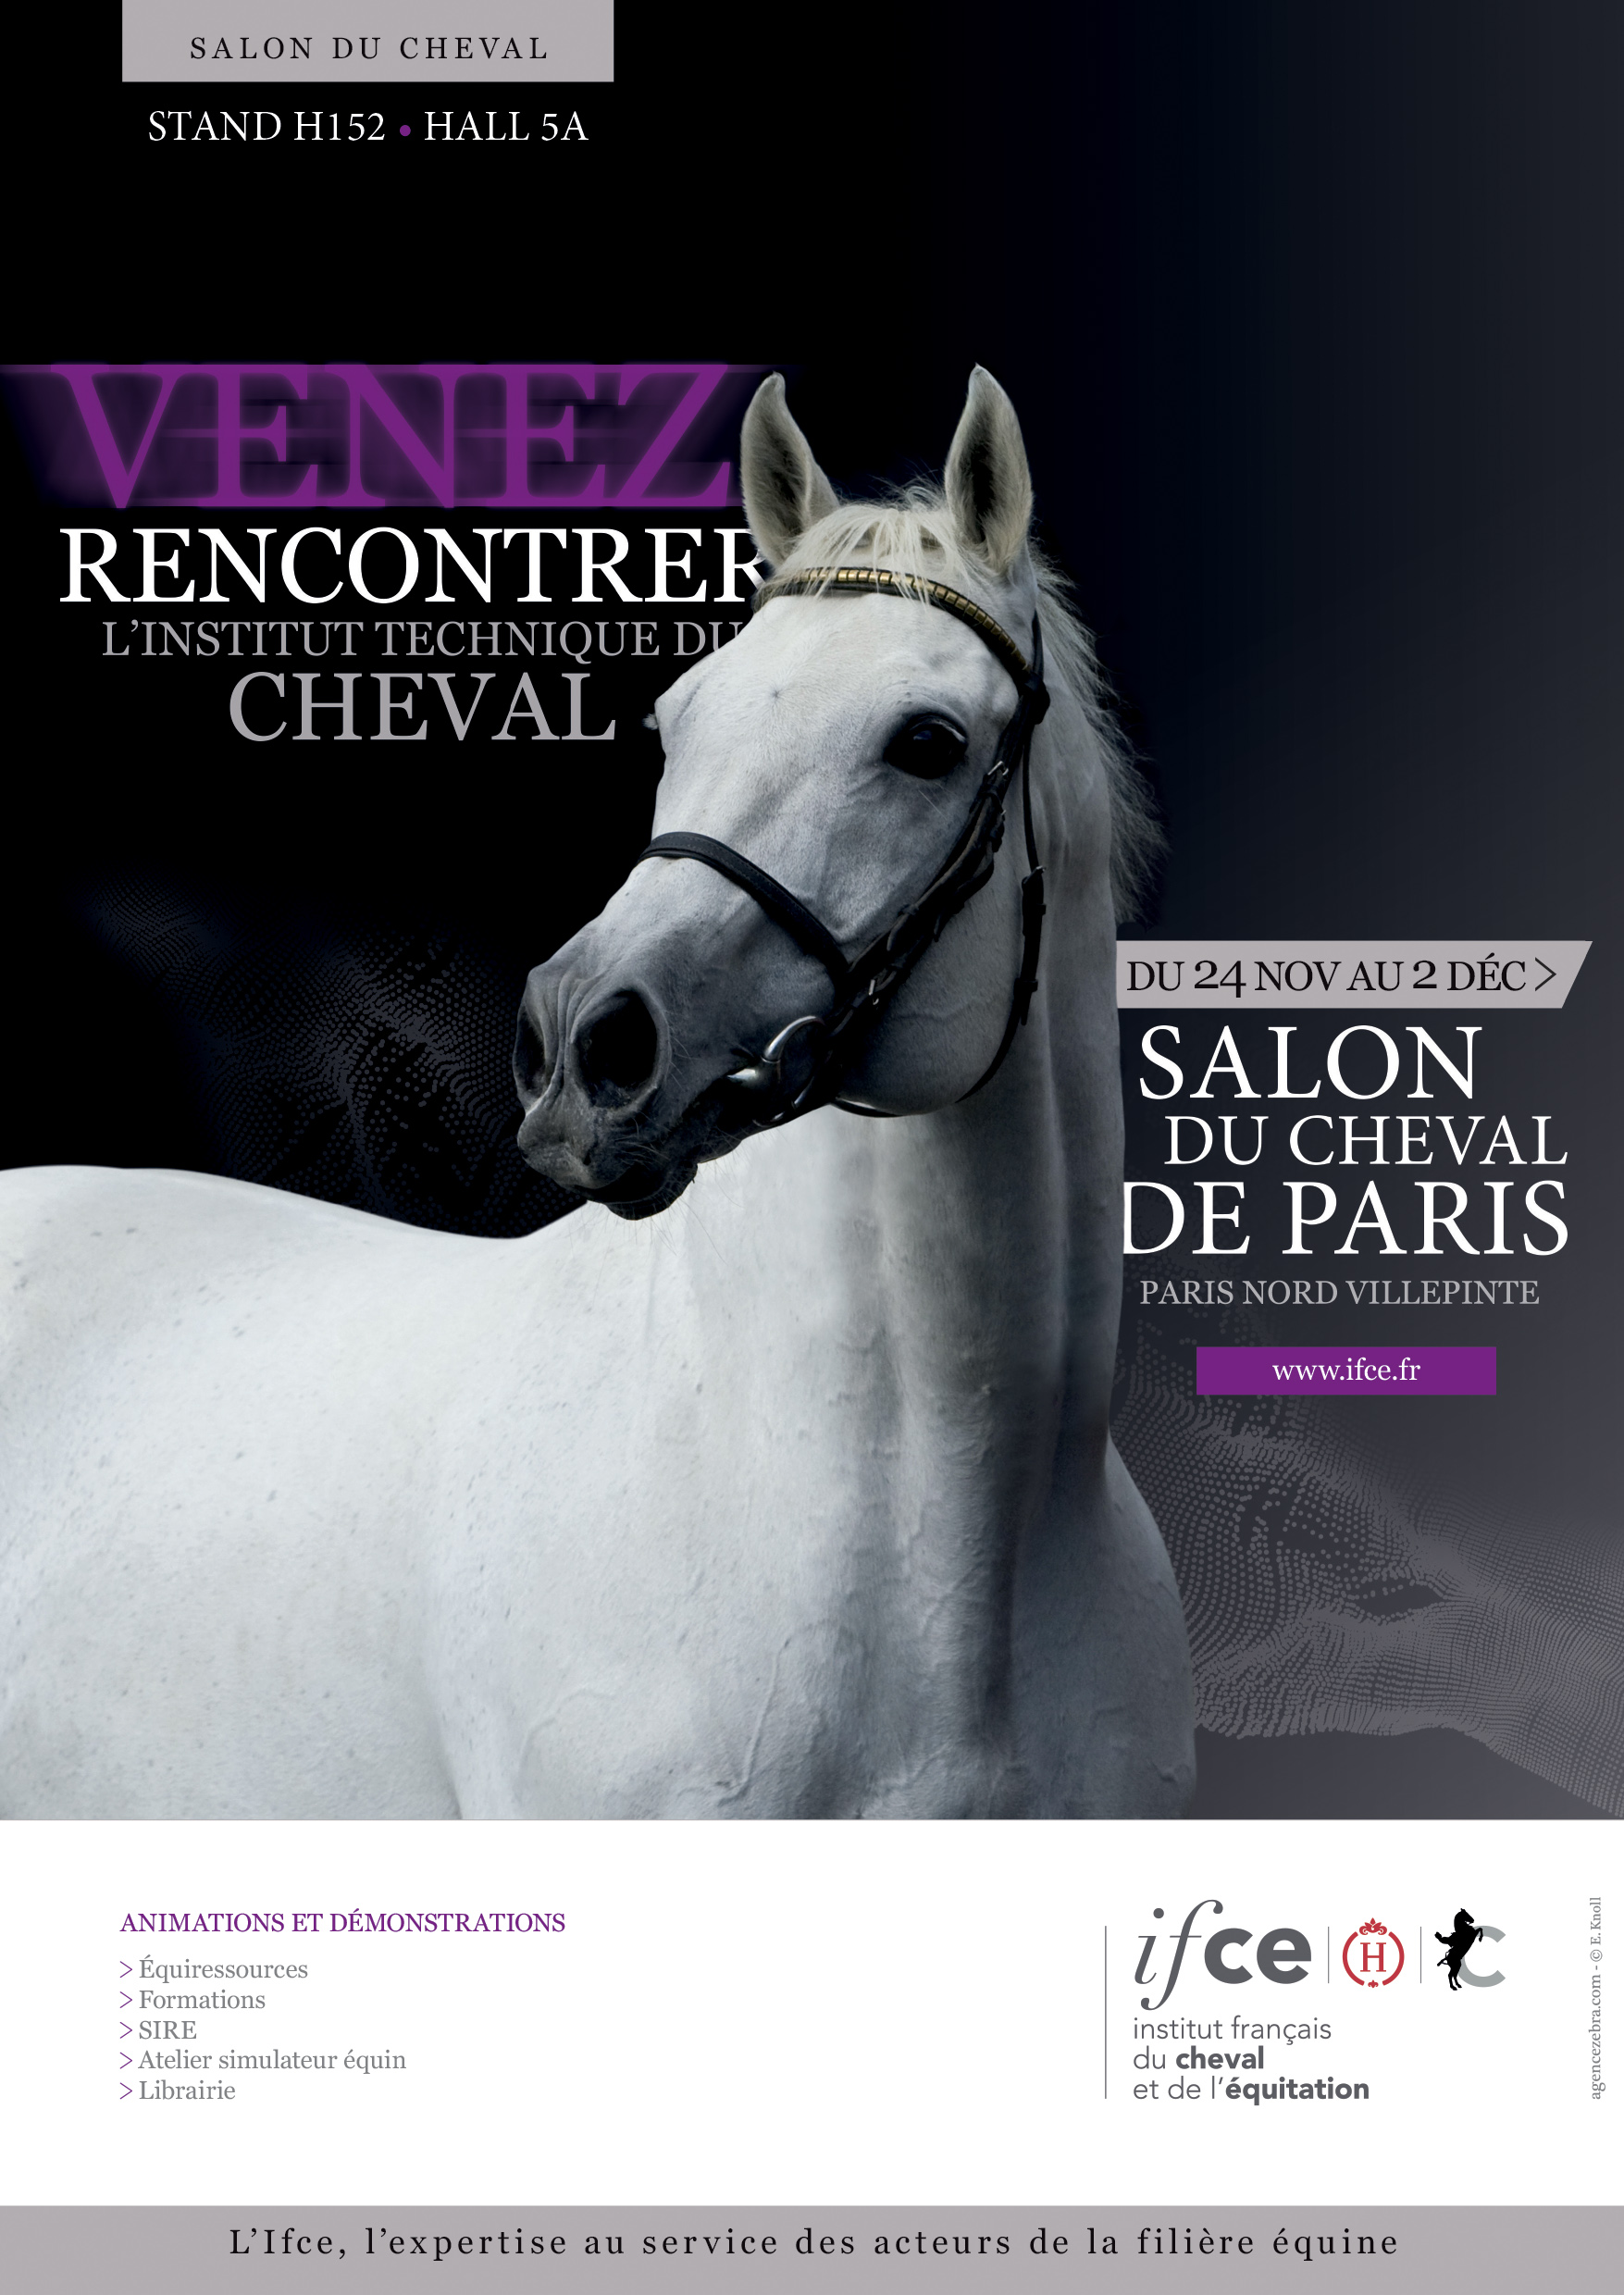 Salon Du Cheval A Paris L Ifce Au Salon Du Cheval De Paris Du 24 Nov Au 2 Déc 2018